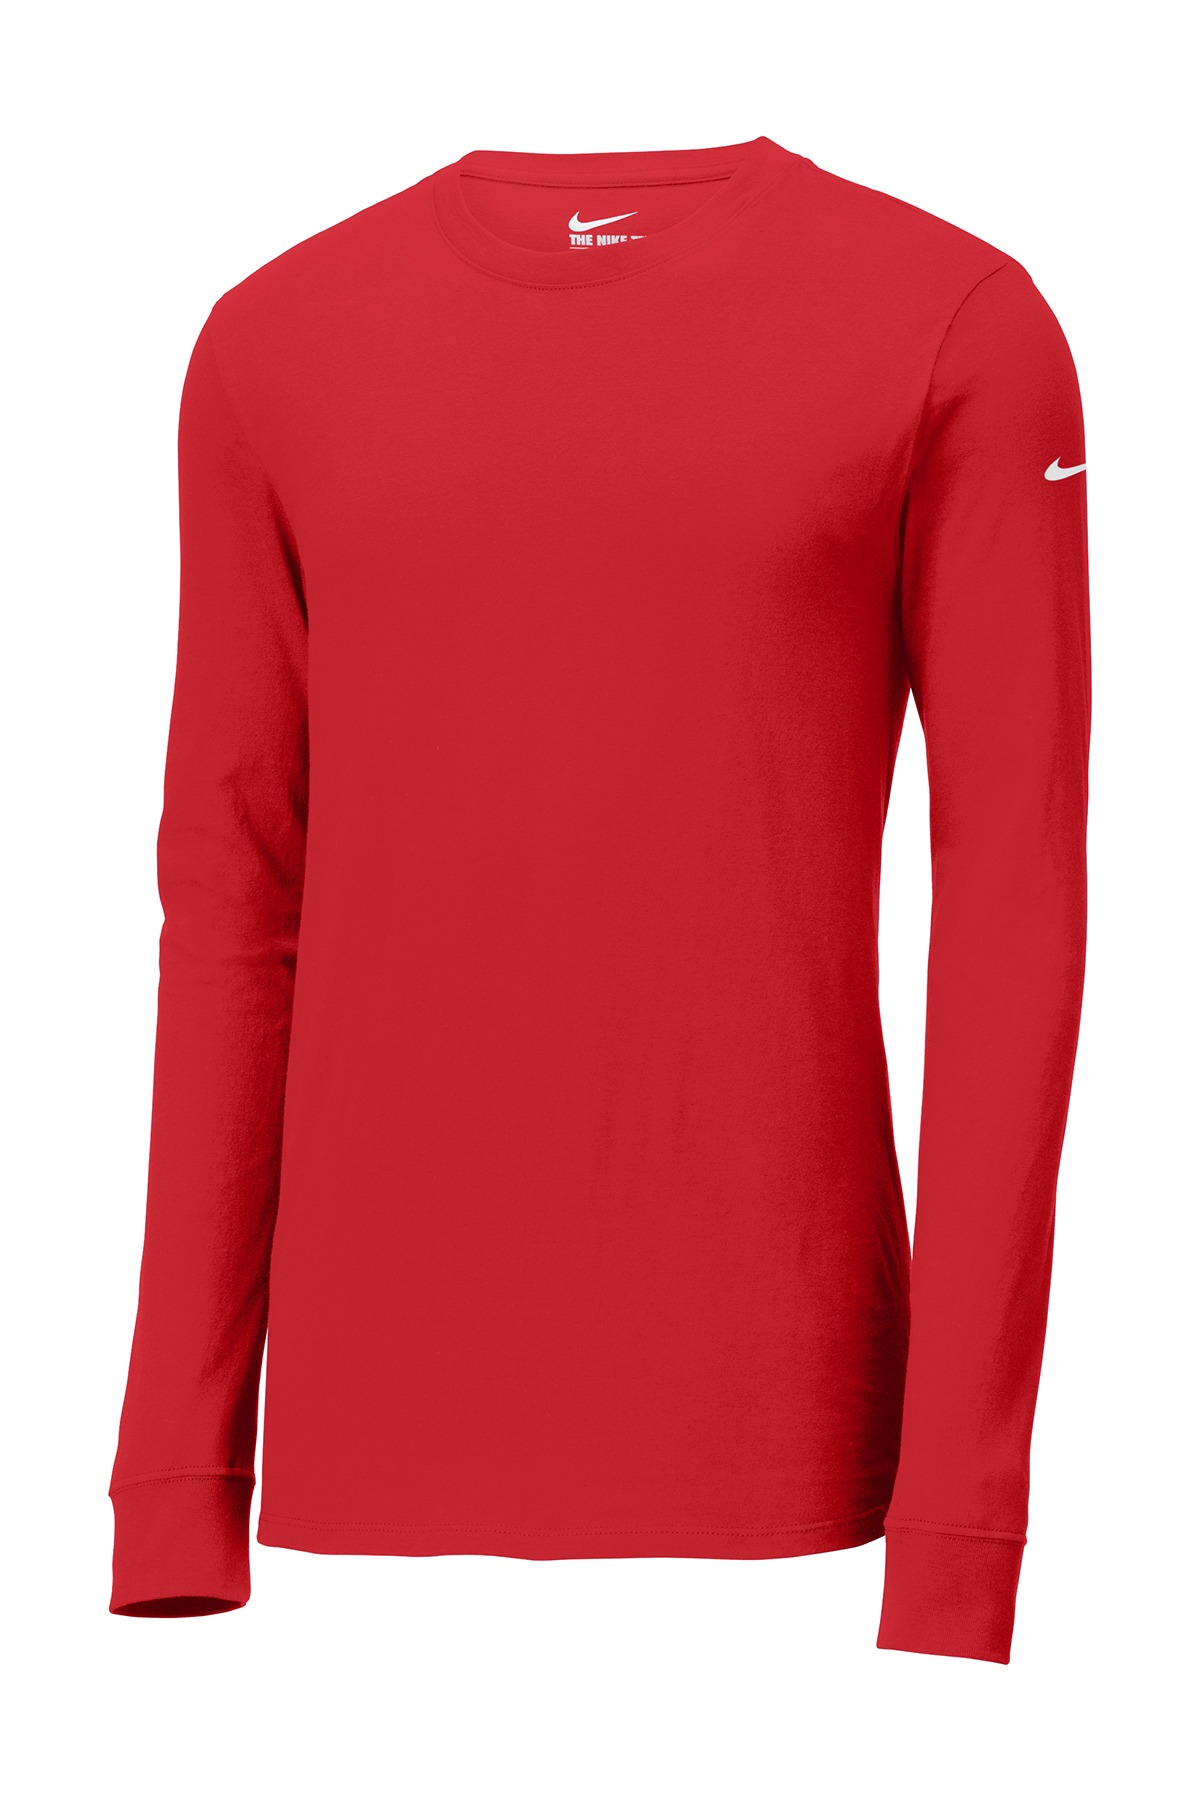 Nike Golf NKBQ5232 - Men's Core Cotton Long Sleeve Tee